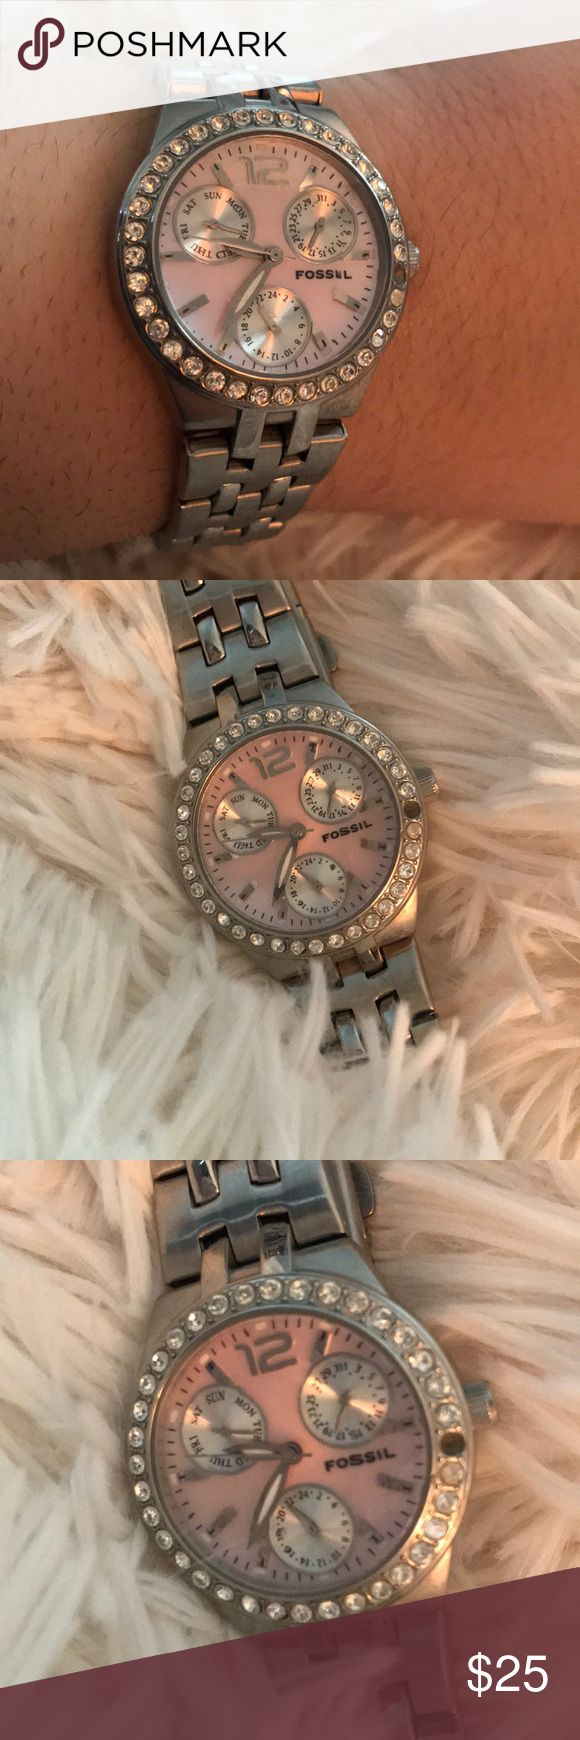 Women's Fossil Watch Used, Women's Fossil Watch. Battery is out, but should run perfectly when replaced. Pink face with a diamond shaped glass top. A stone is missing from around the face. Fossil Accessories Watches